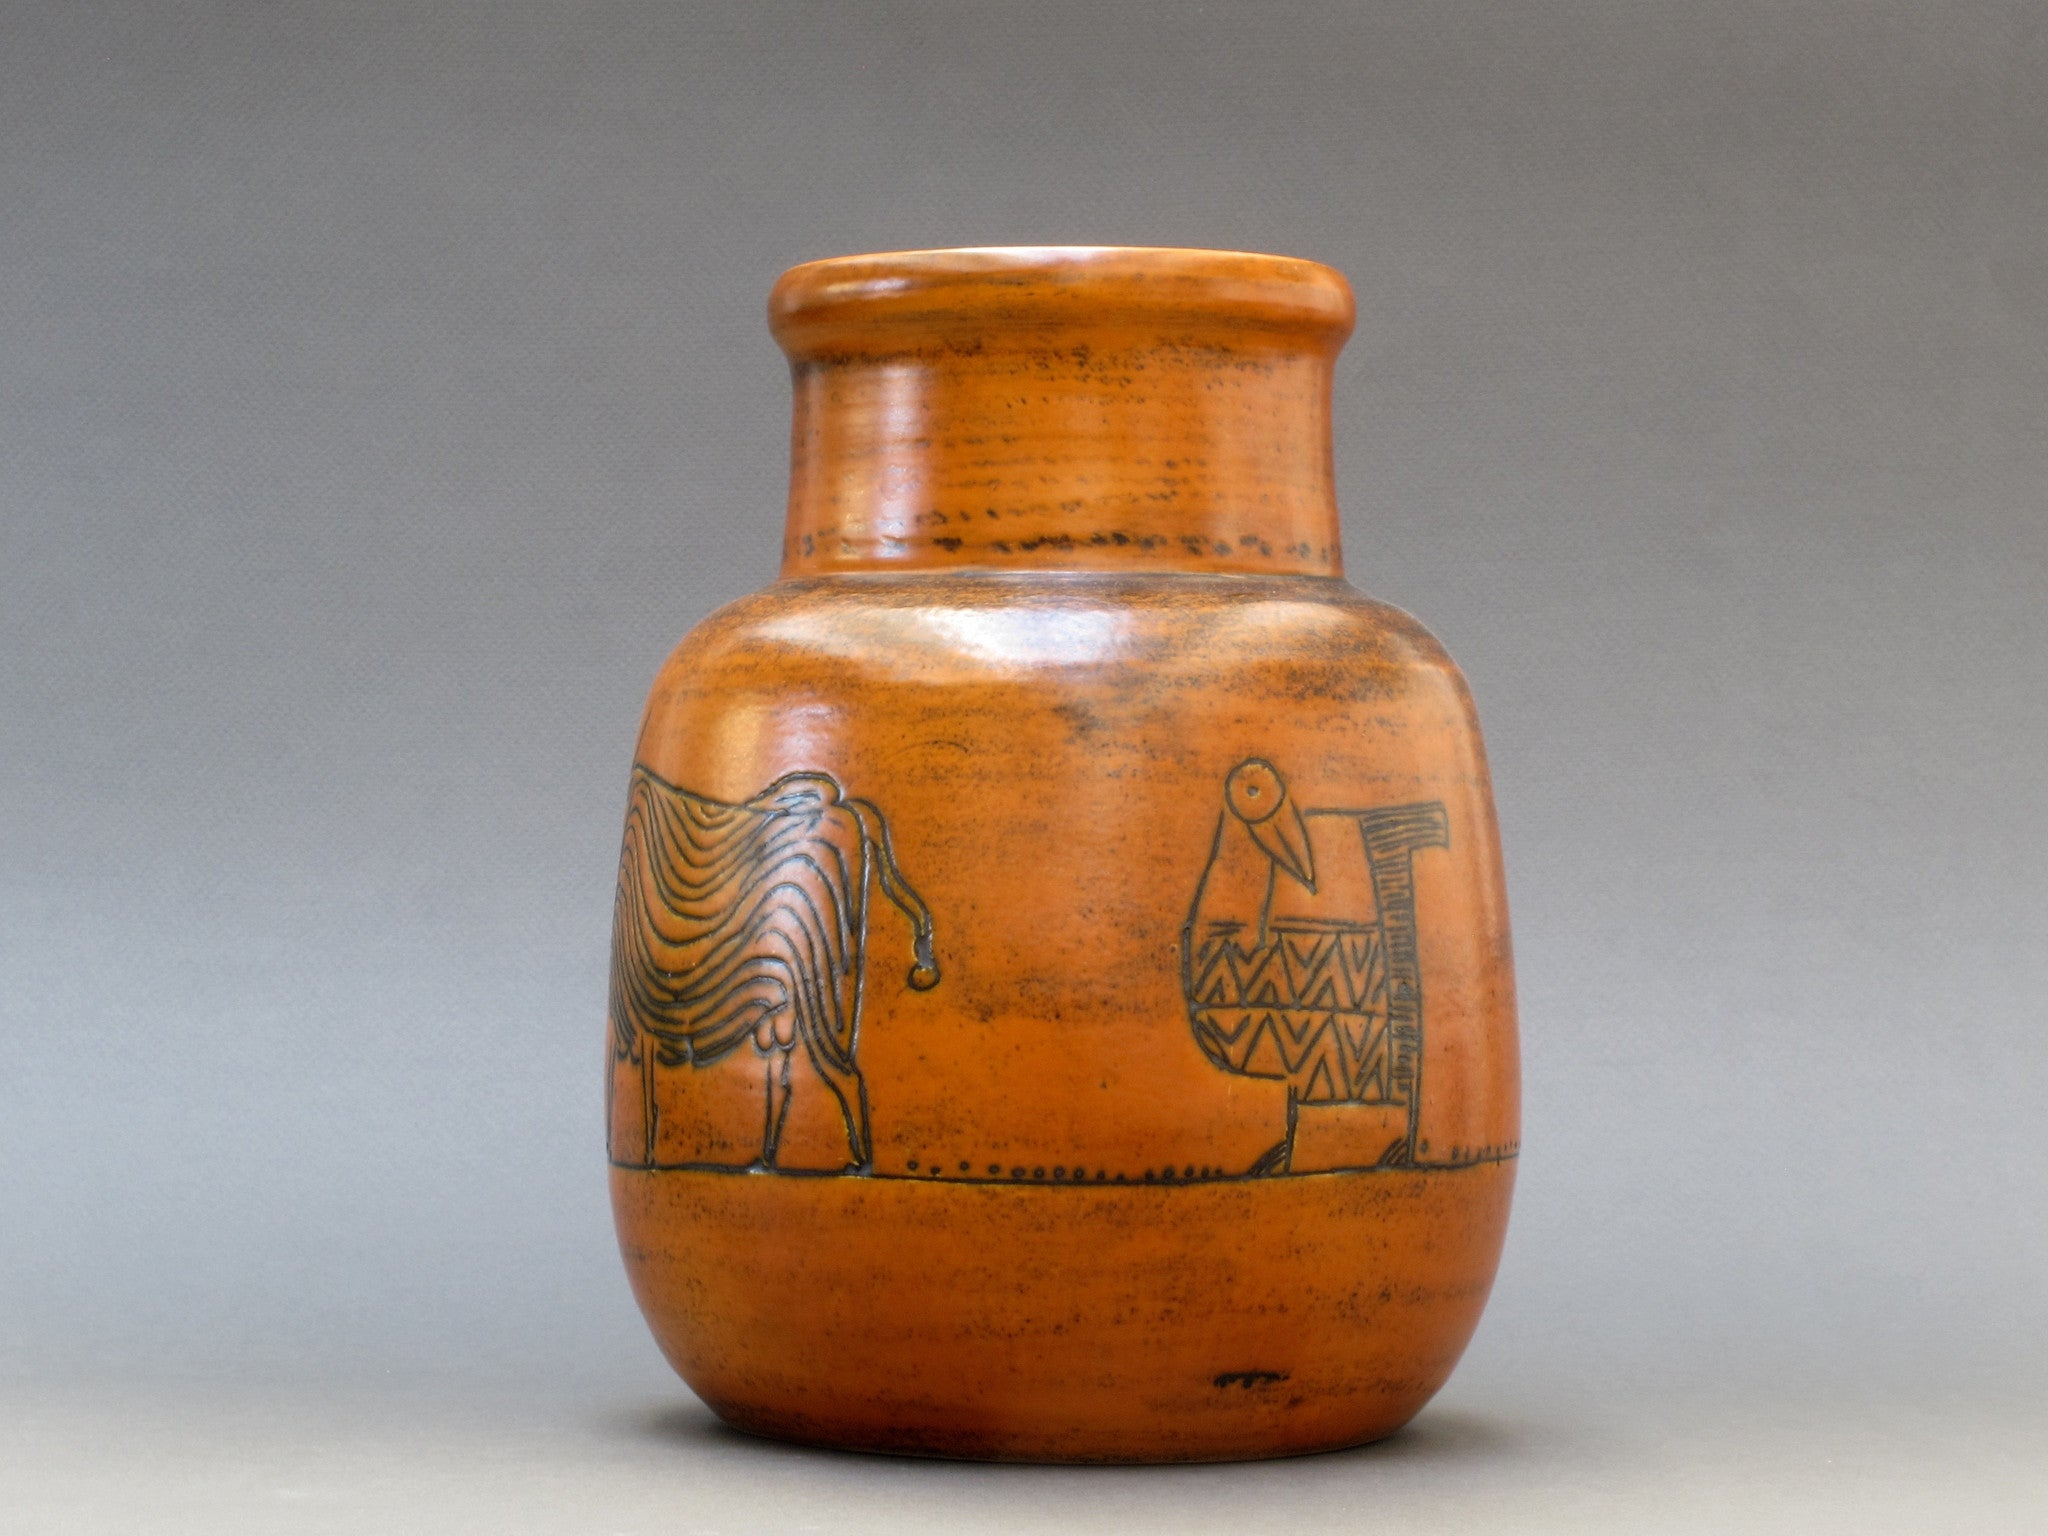 Burnt-Orange Vase by Jacques Blin with Animal Motifs (c. 1950s)